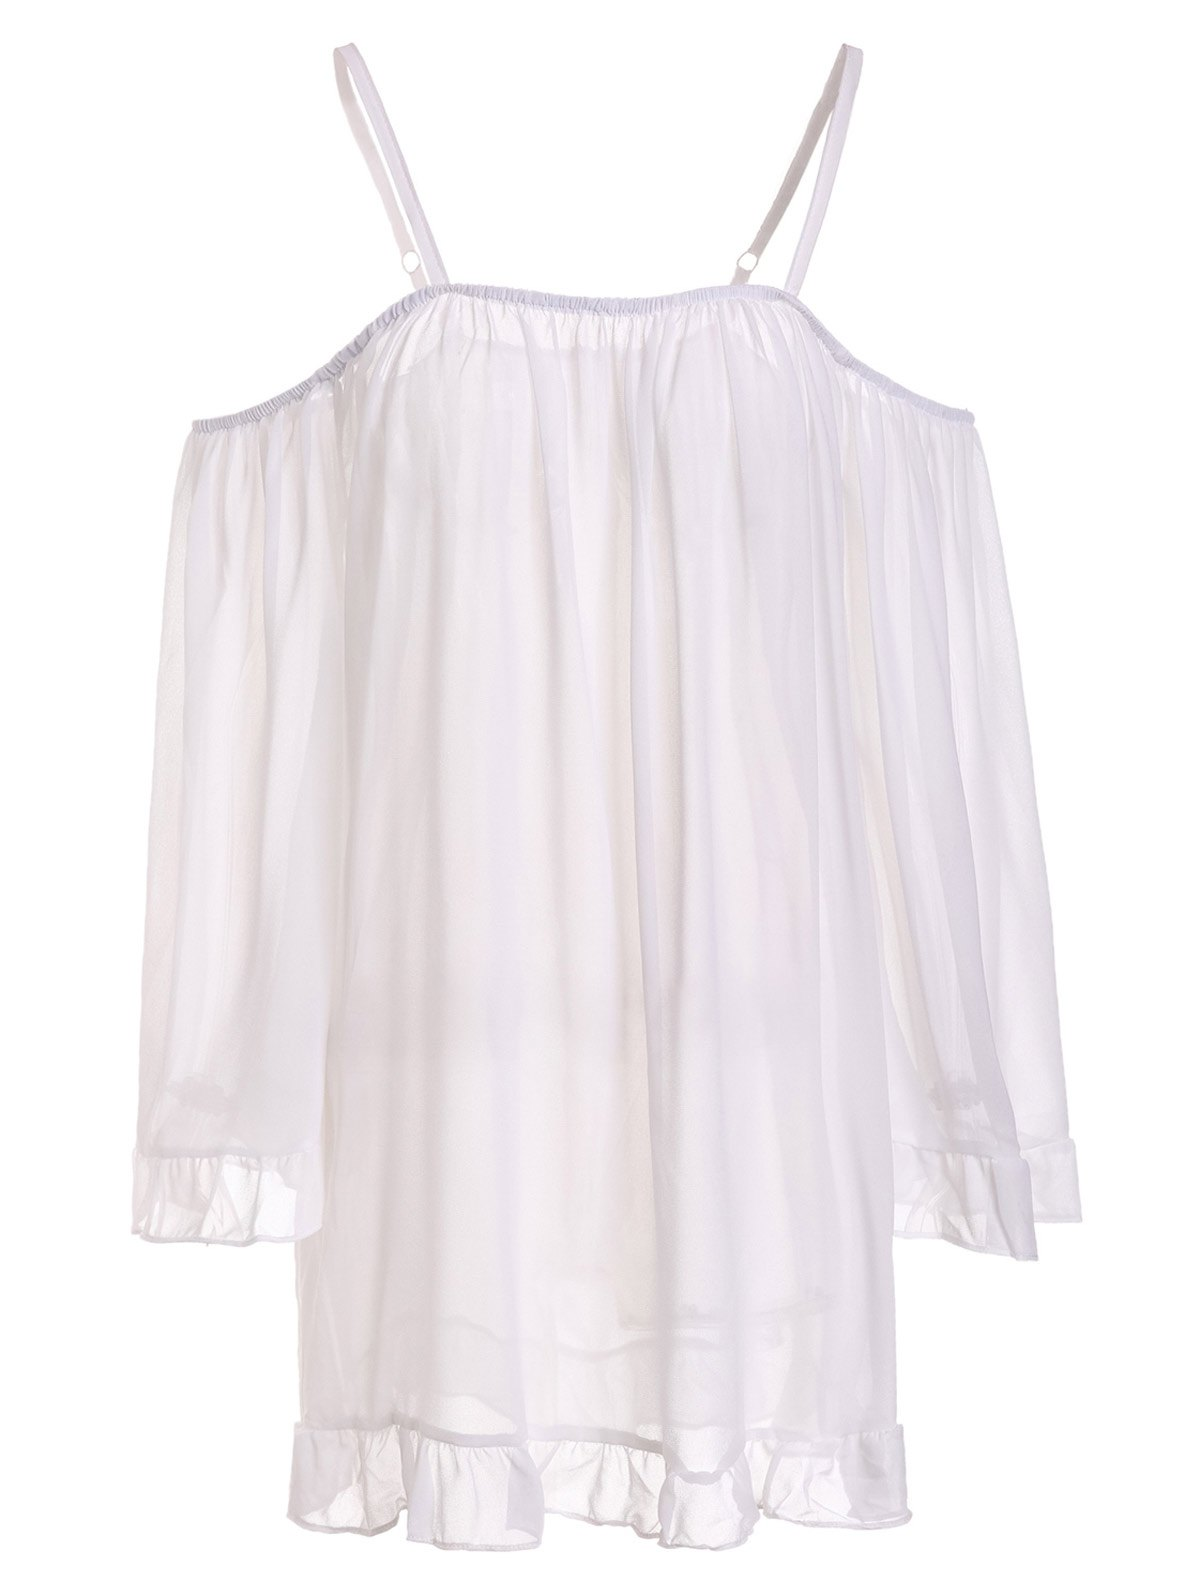 Sexy Long Sleeve Spaghetti Strap Off-The-Shoulder Women's Dress - WHITE S